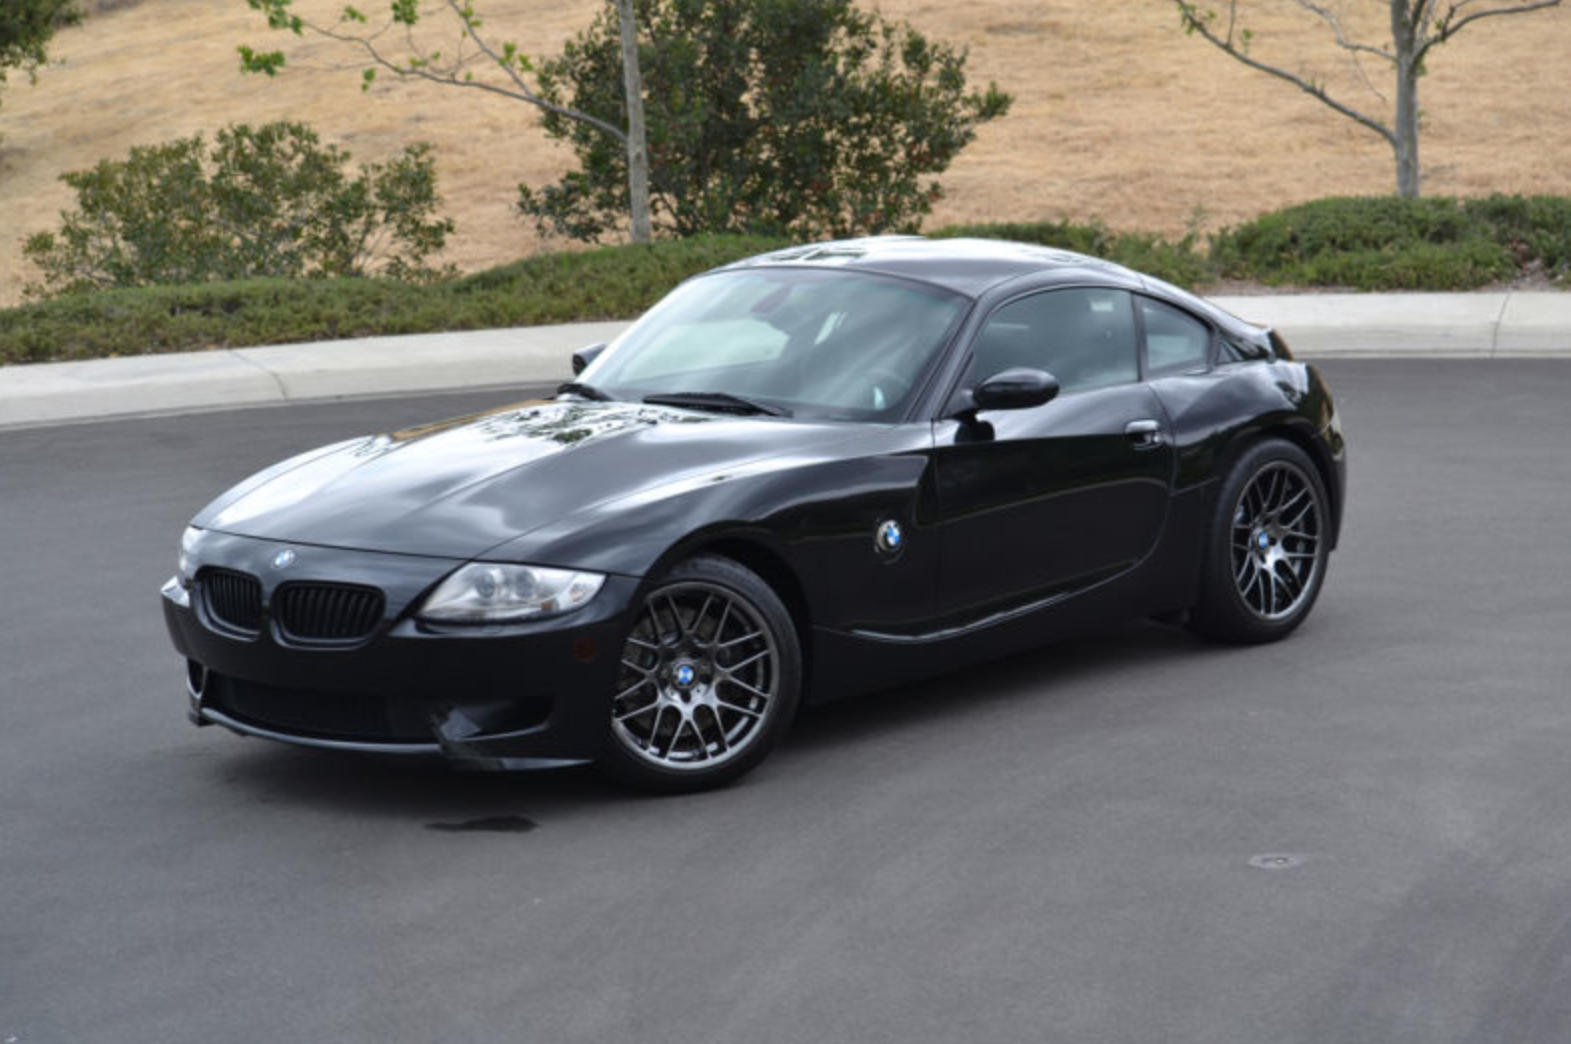 2007 Bmw Z4 M Coupe Pictures Information And Specs